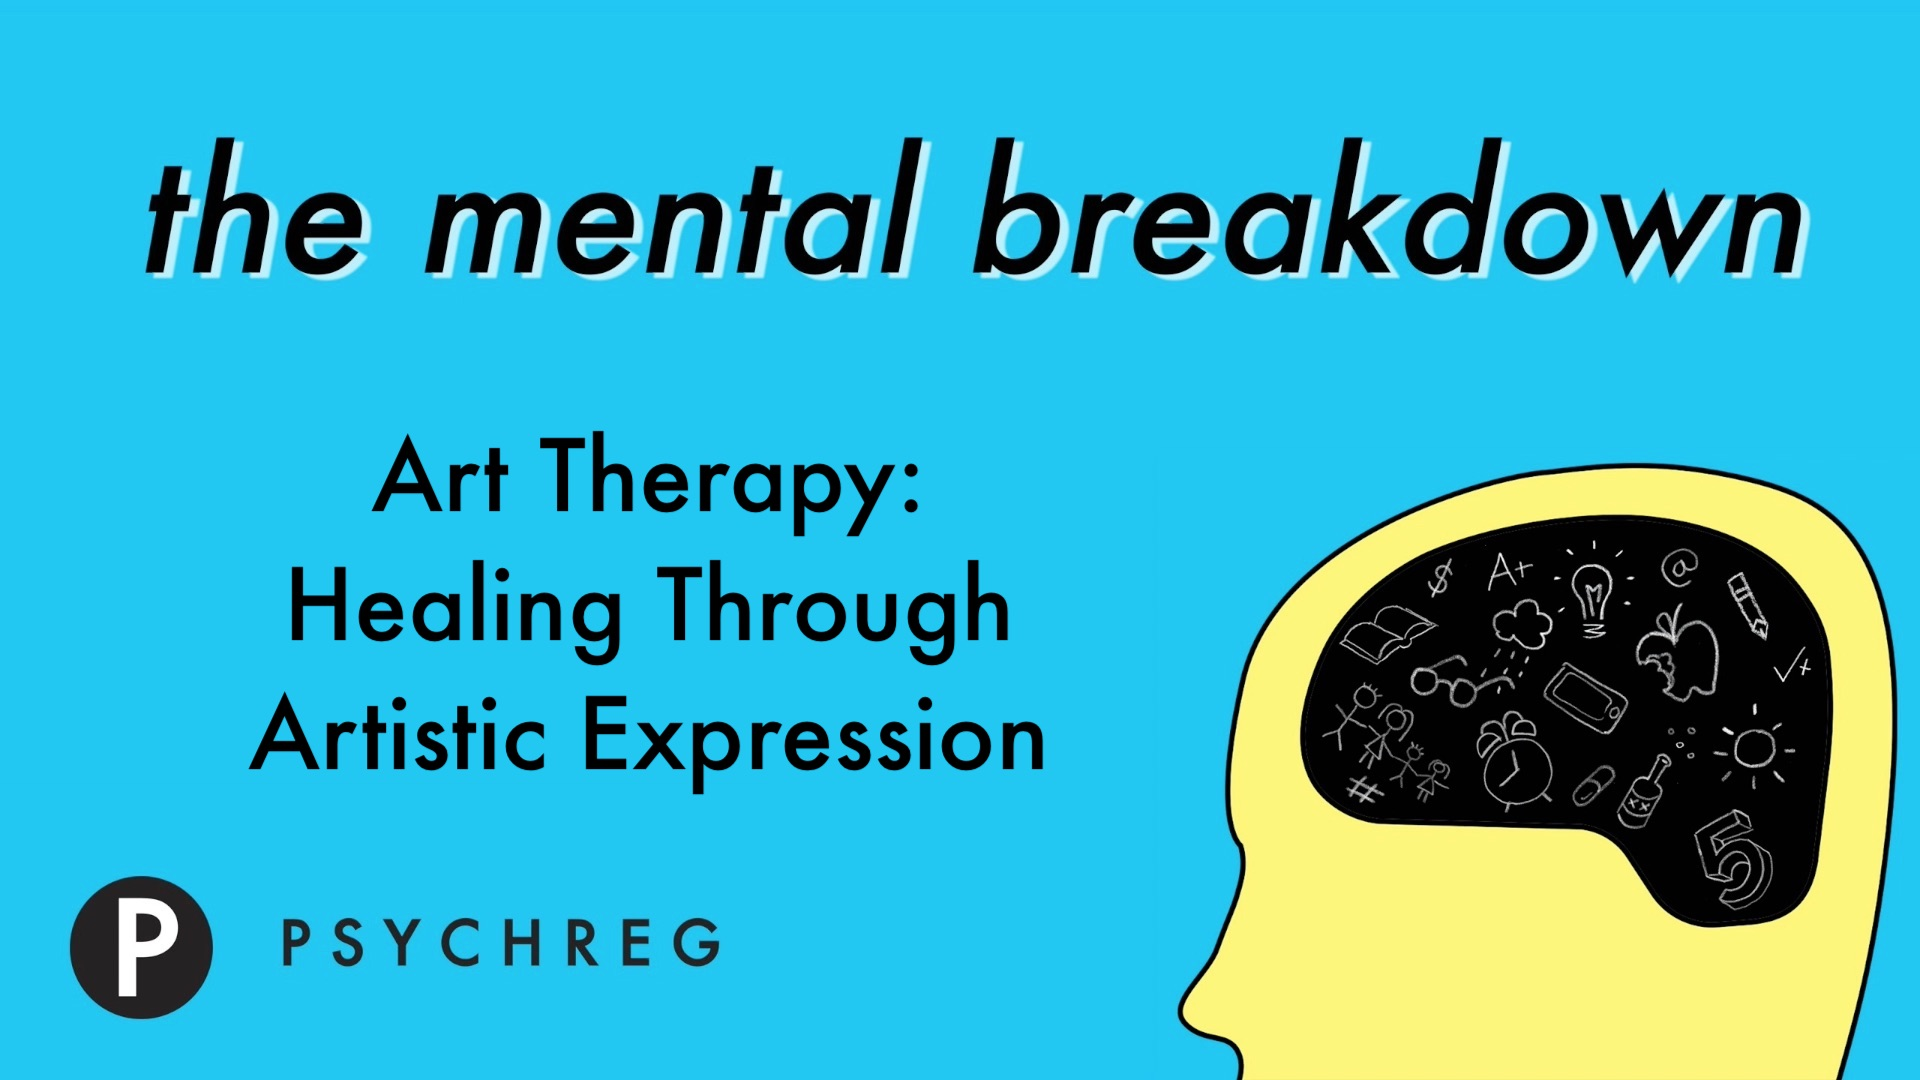 Art Therapy Healing Through Artistic Expression The Mental Breakdown